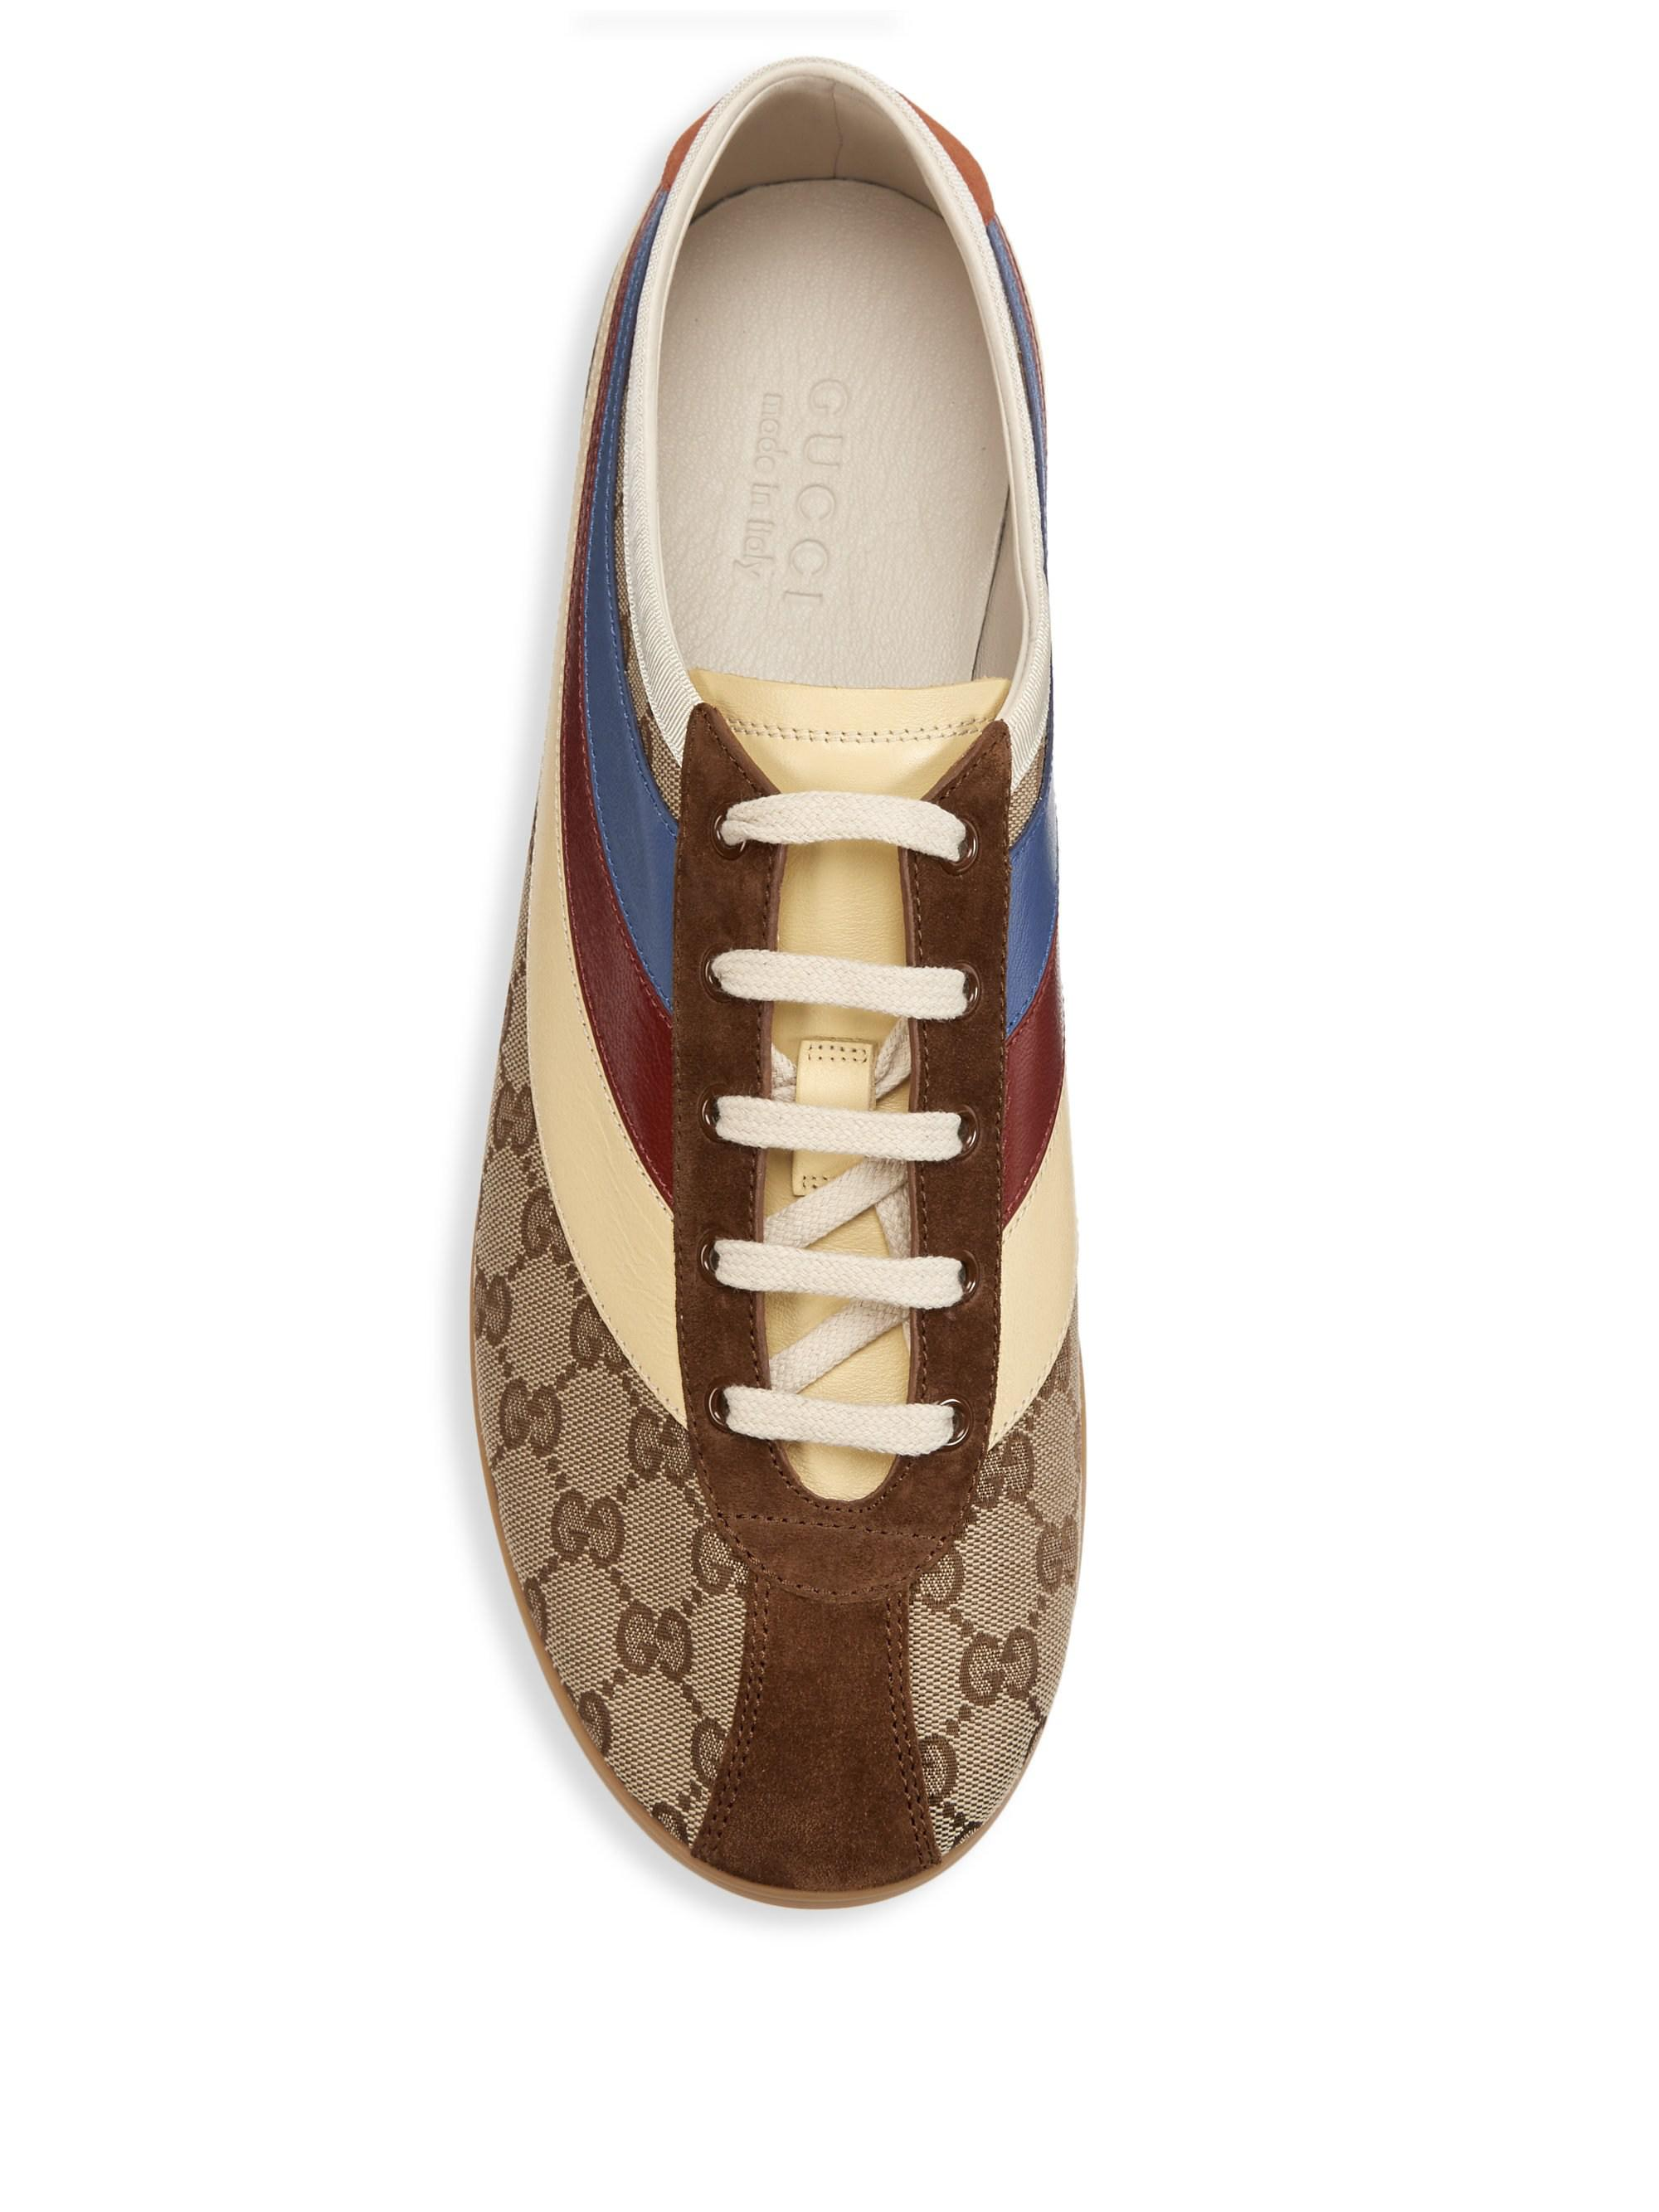 9cd621d7764 Gucci - Men s Falacer GG Sneaker With Web - Brown - Size 7.5 Uk (8.5. View  fullscreen